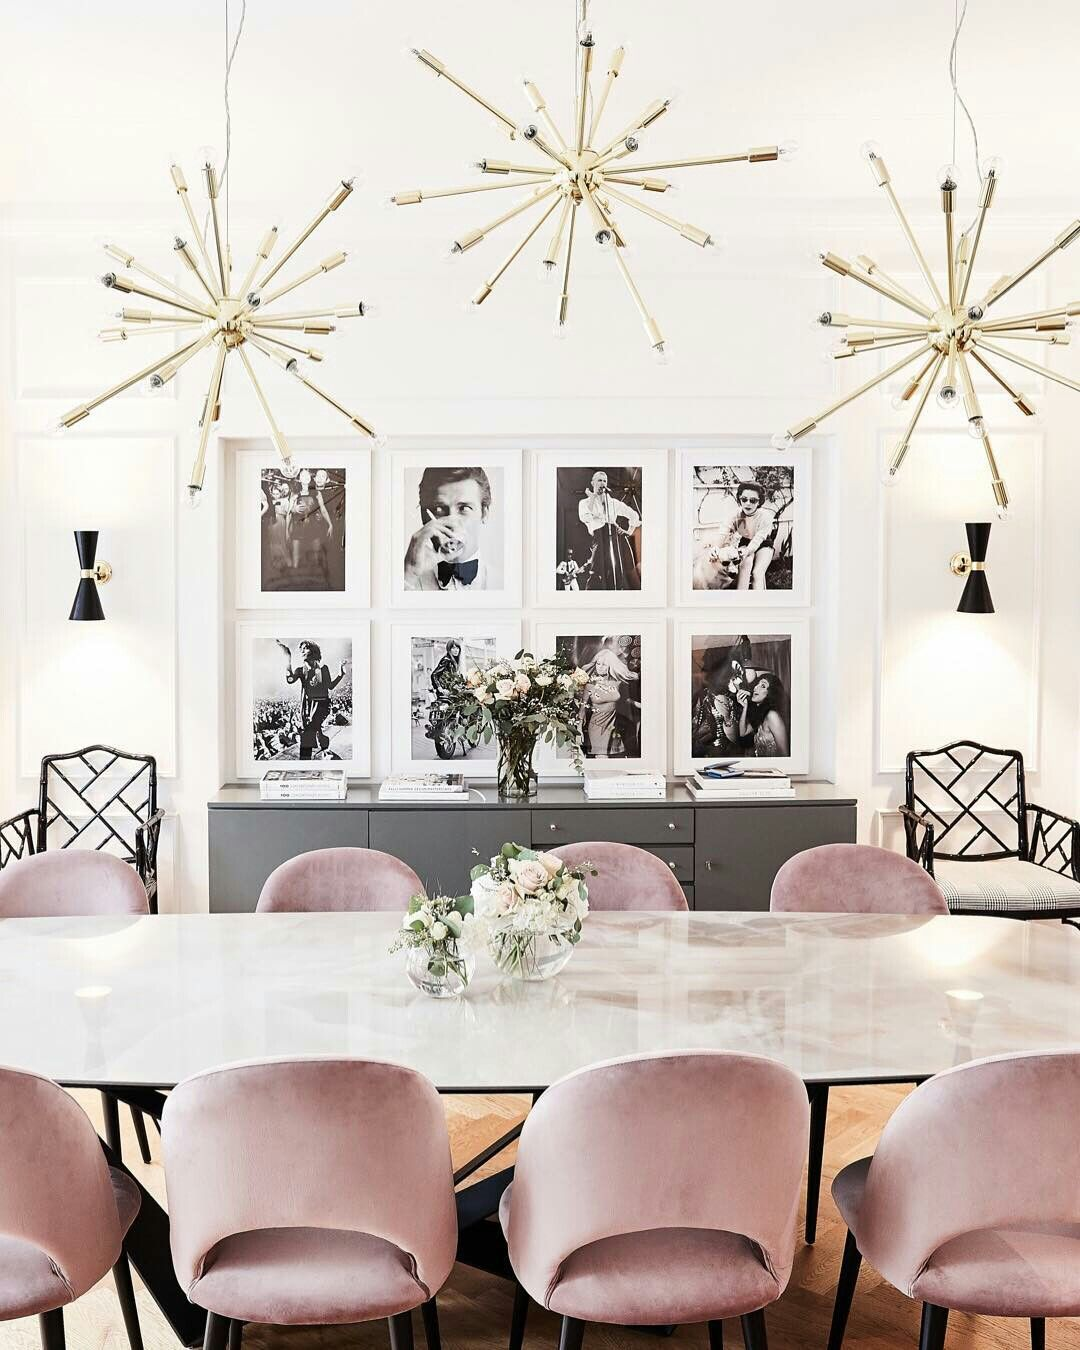 The Velvet Pink Accent Chairs The Black And White Portraits The Light Fixtures Everything About This Is Amazing Pink Dining Rooms